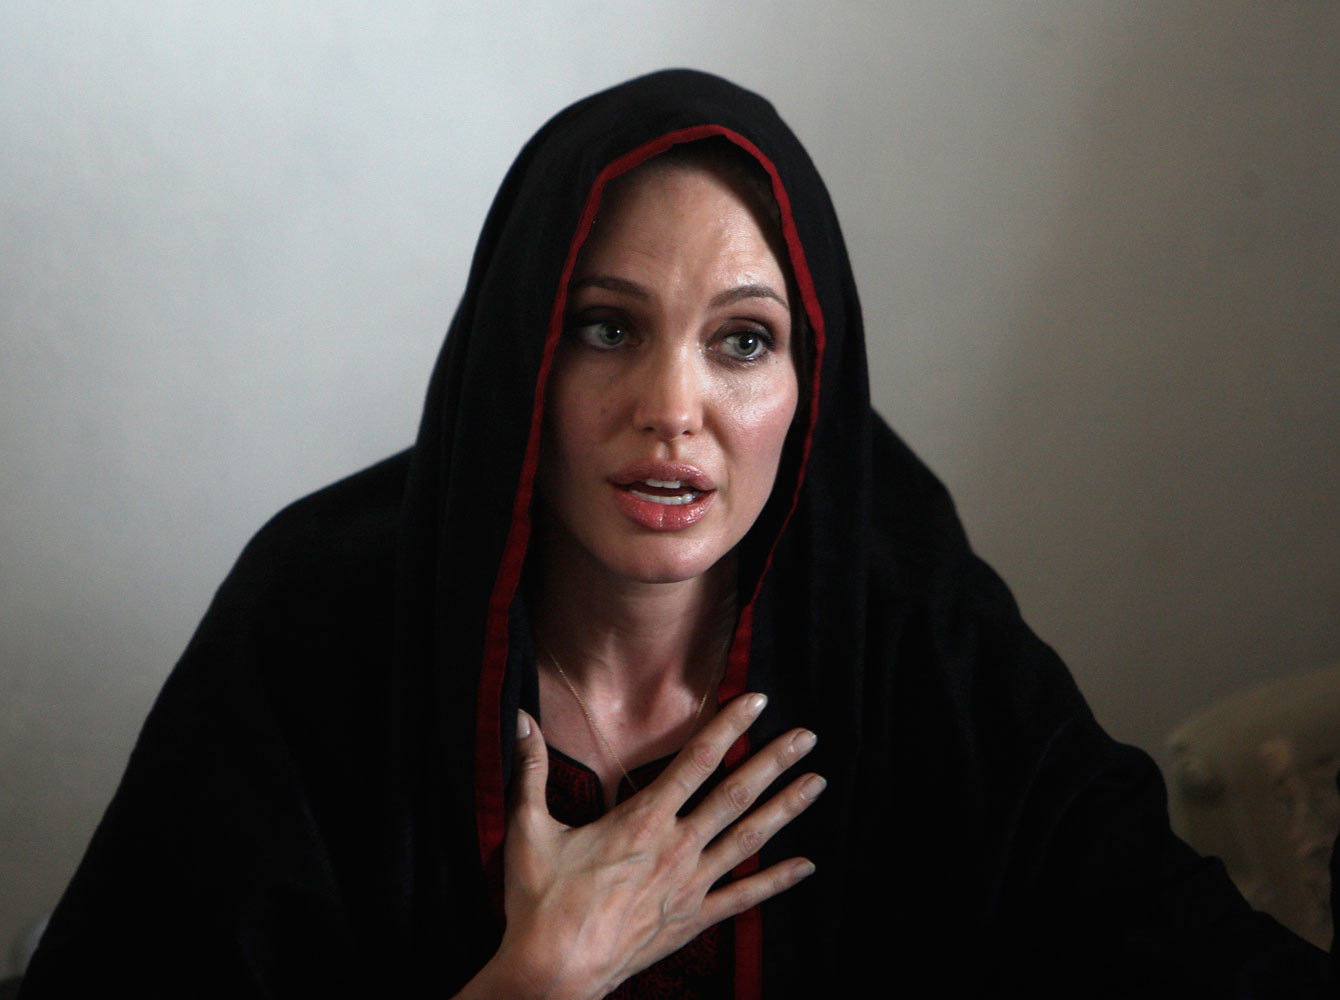 Angelina Jolie  speaks with media during a visit to the Jalozai flood victim relief camp in Pakistan's northwest Khyber-Pakhtunkhwa province on Sept. 7, 2010.